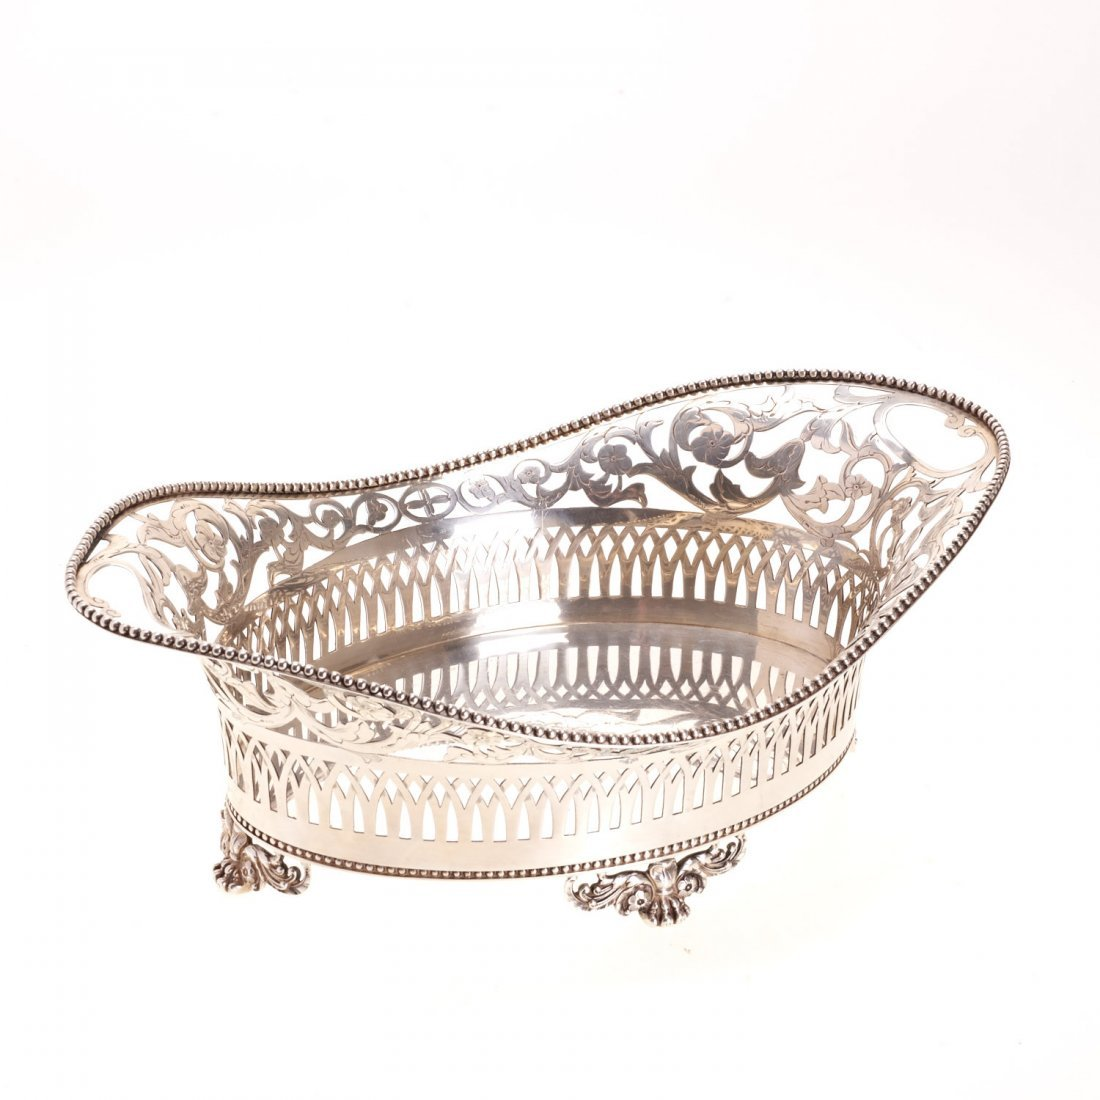 Tiffany & Co. reticulated sterling silver basket